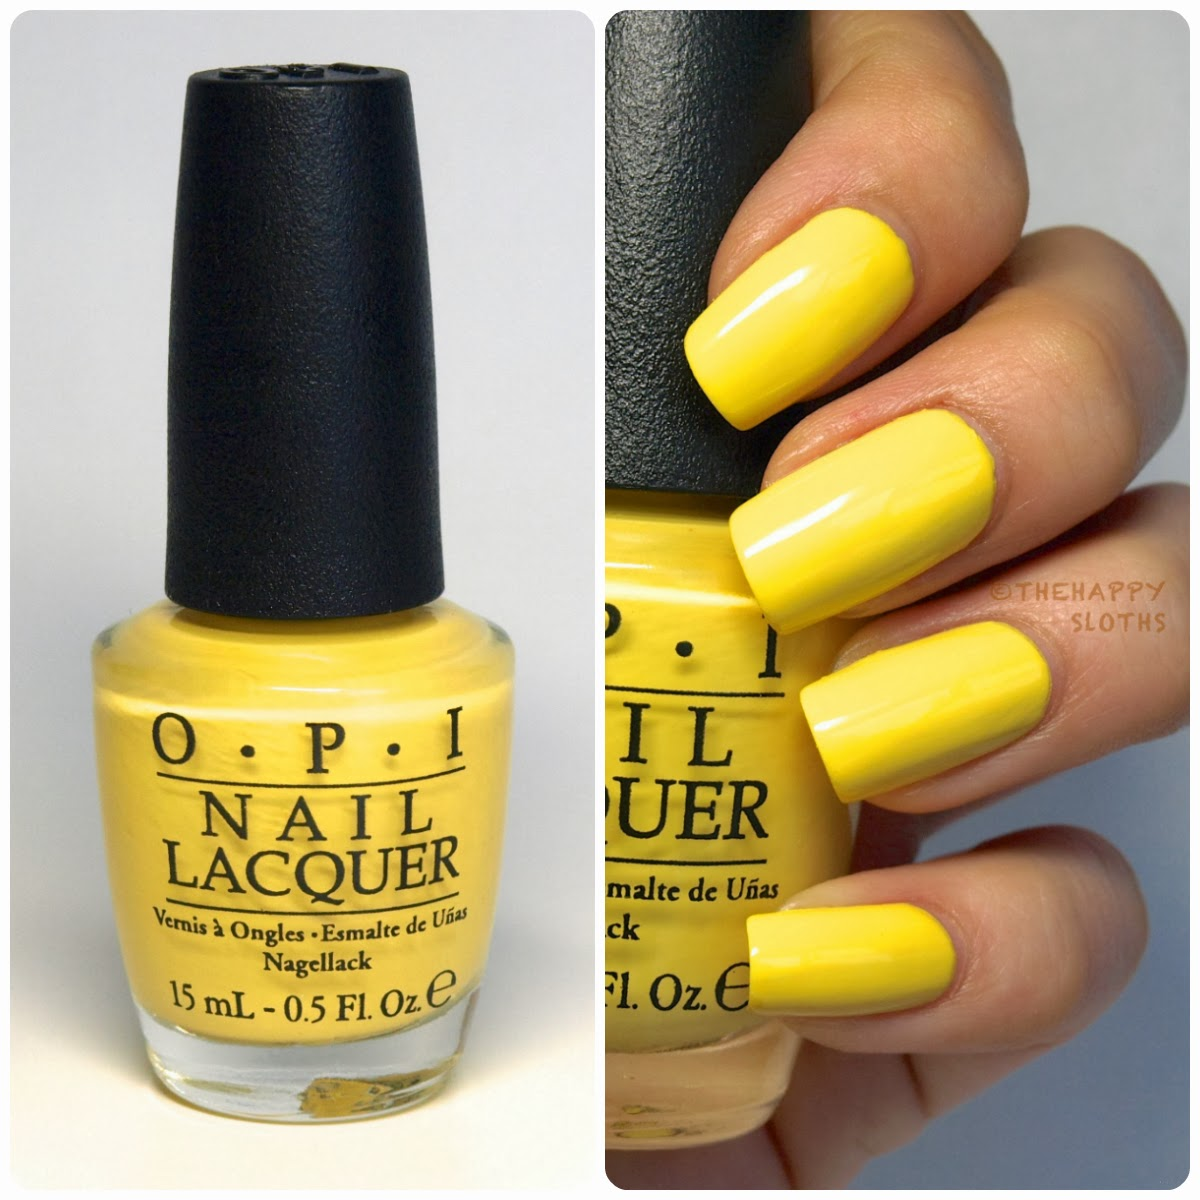 OPI Brazil Collection S/S 2014 Nail Polishes: Review And